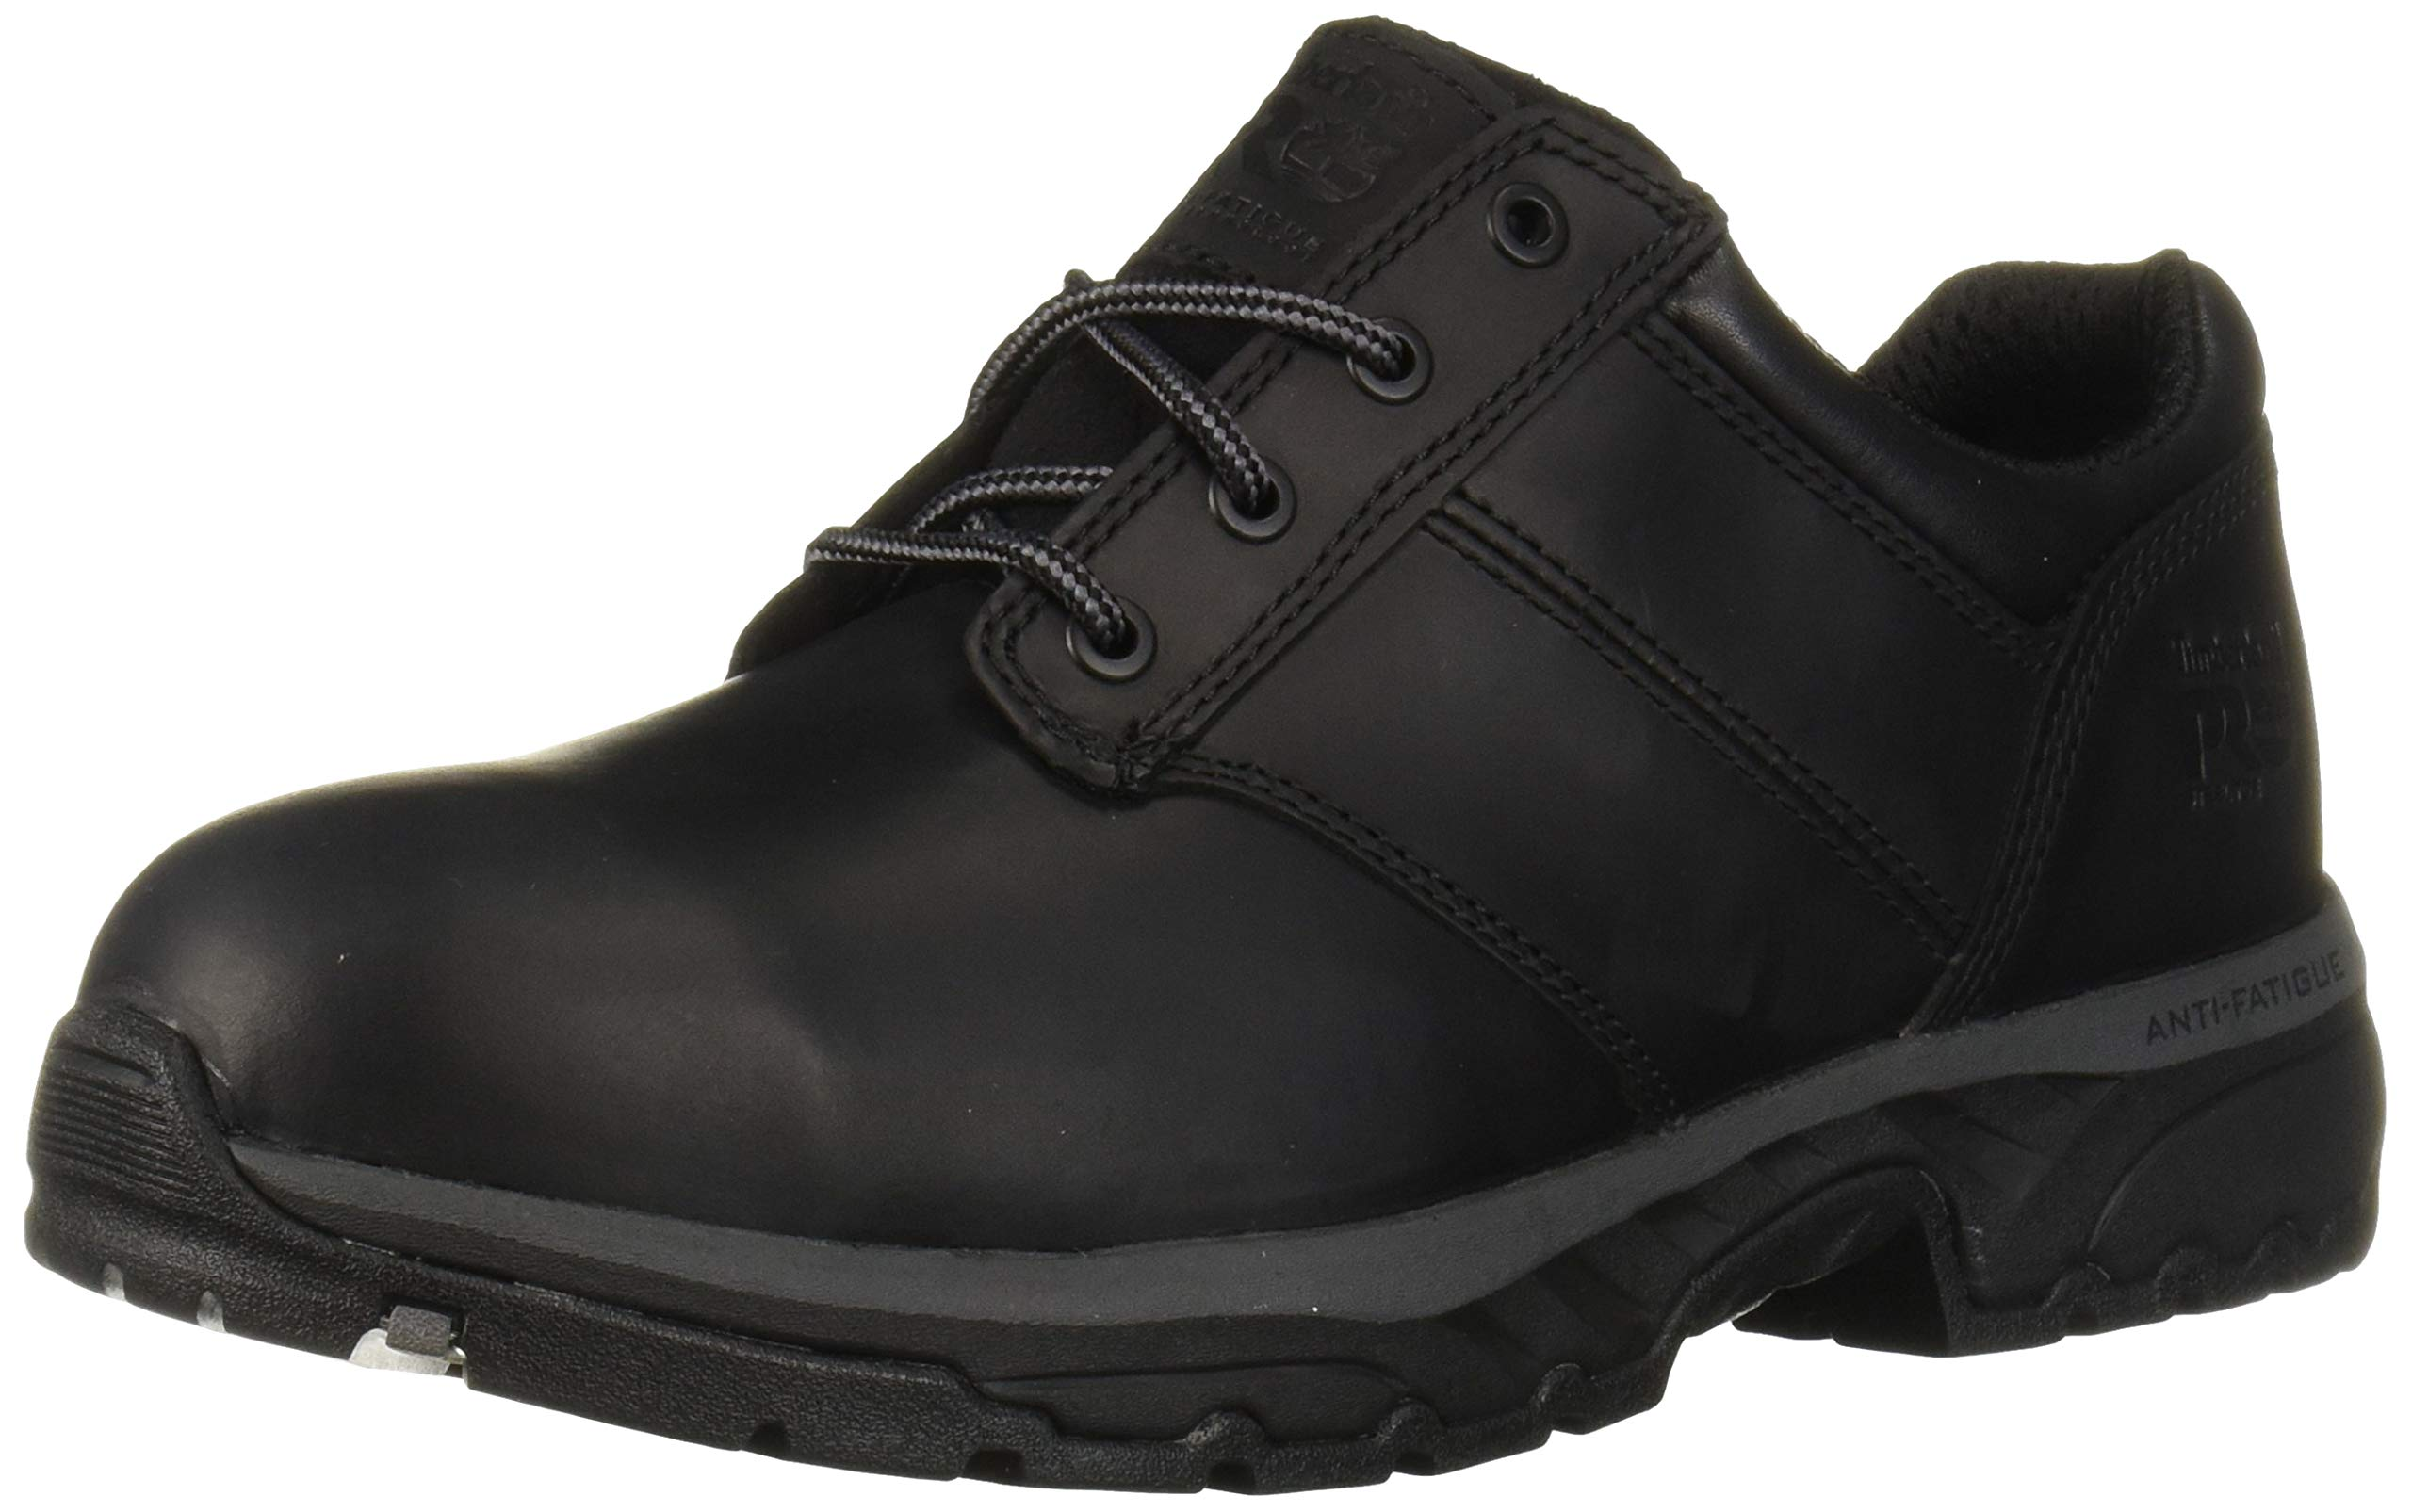 Timberland PRO Men's Jigsaw Oxford Steel Toe Industrial Boot, Black, 14 W US by Timberland PRO